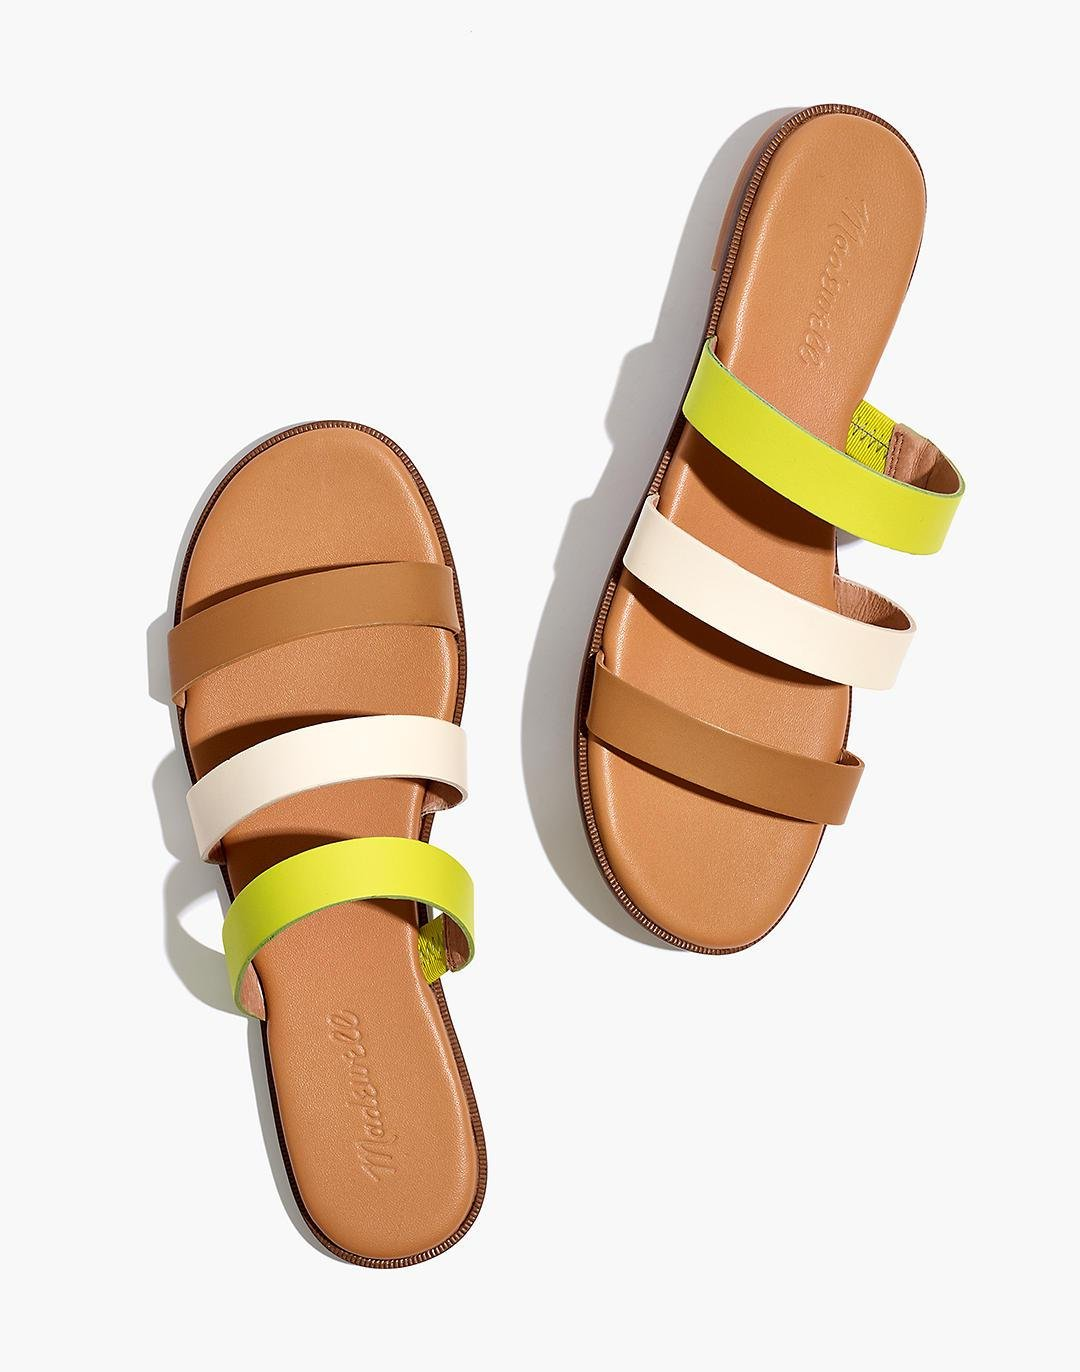 The Ilana Slide Sandal in Colorblock Leather